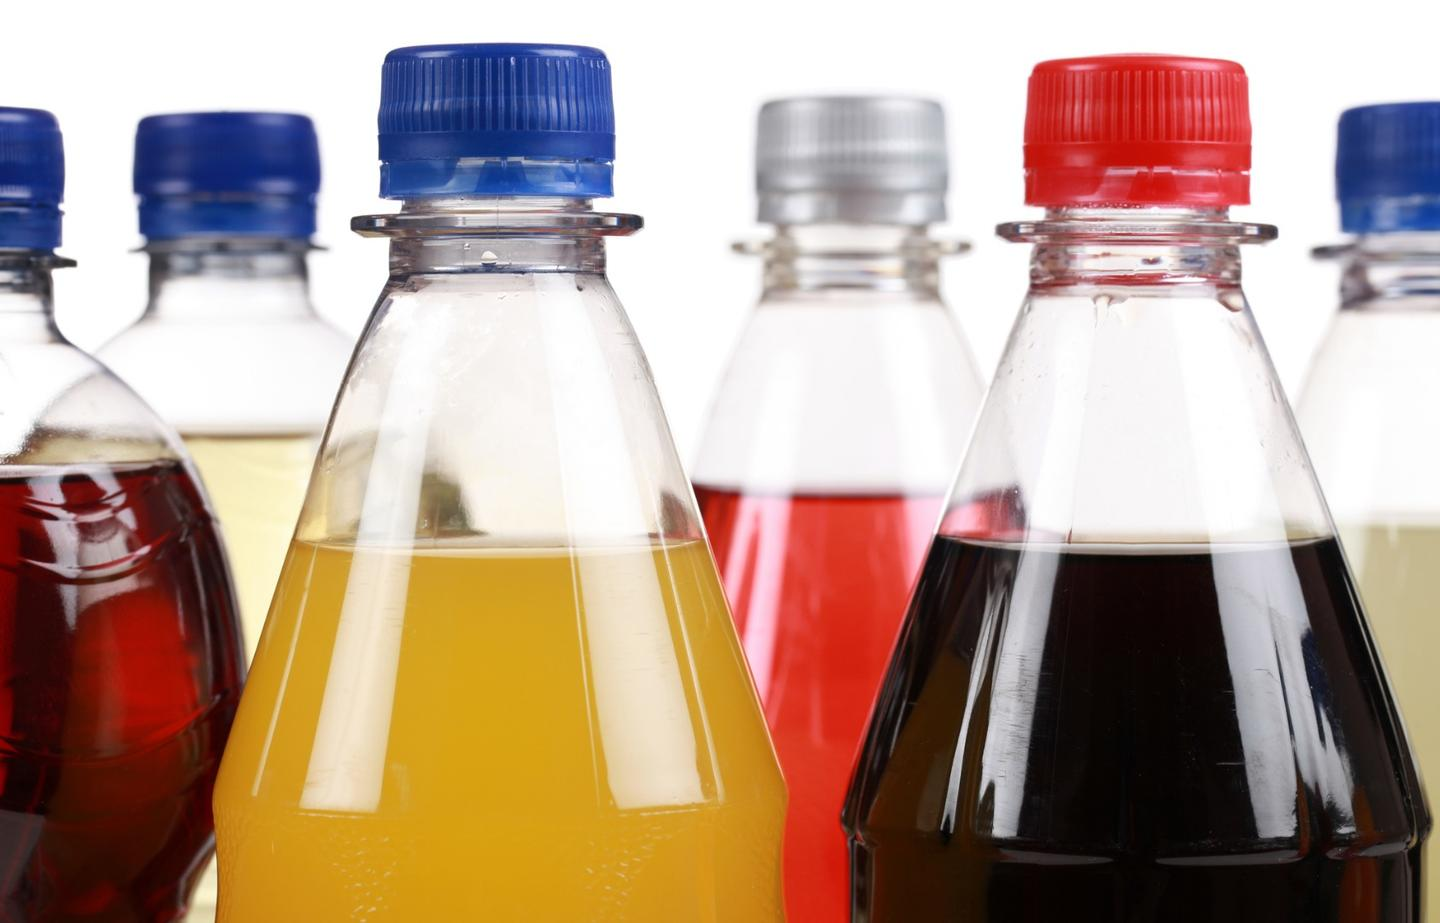 A link between sugary soft drinks and cancerraisesan old debate over whether excessive sugar consumption directly leads to the devastating disease